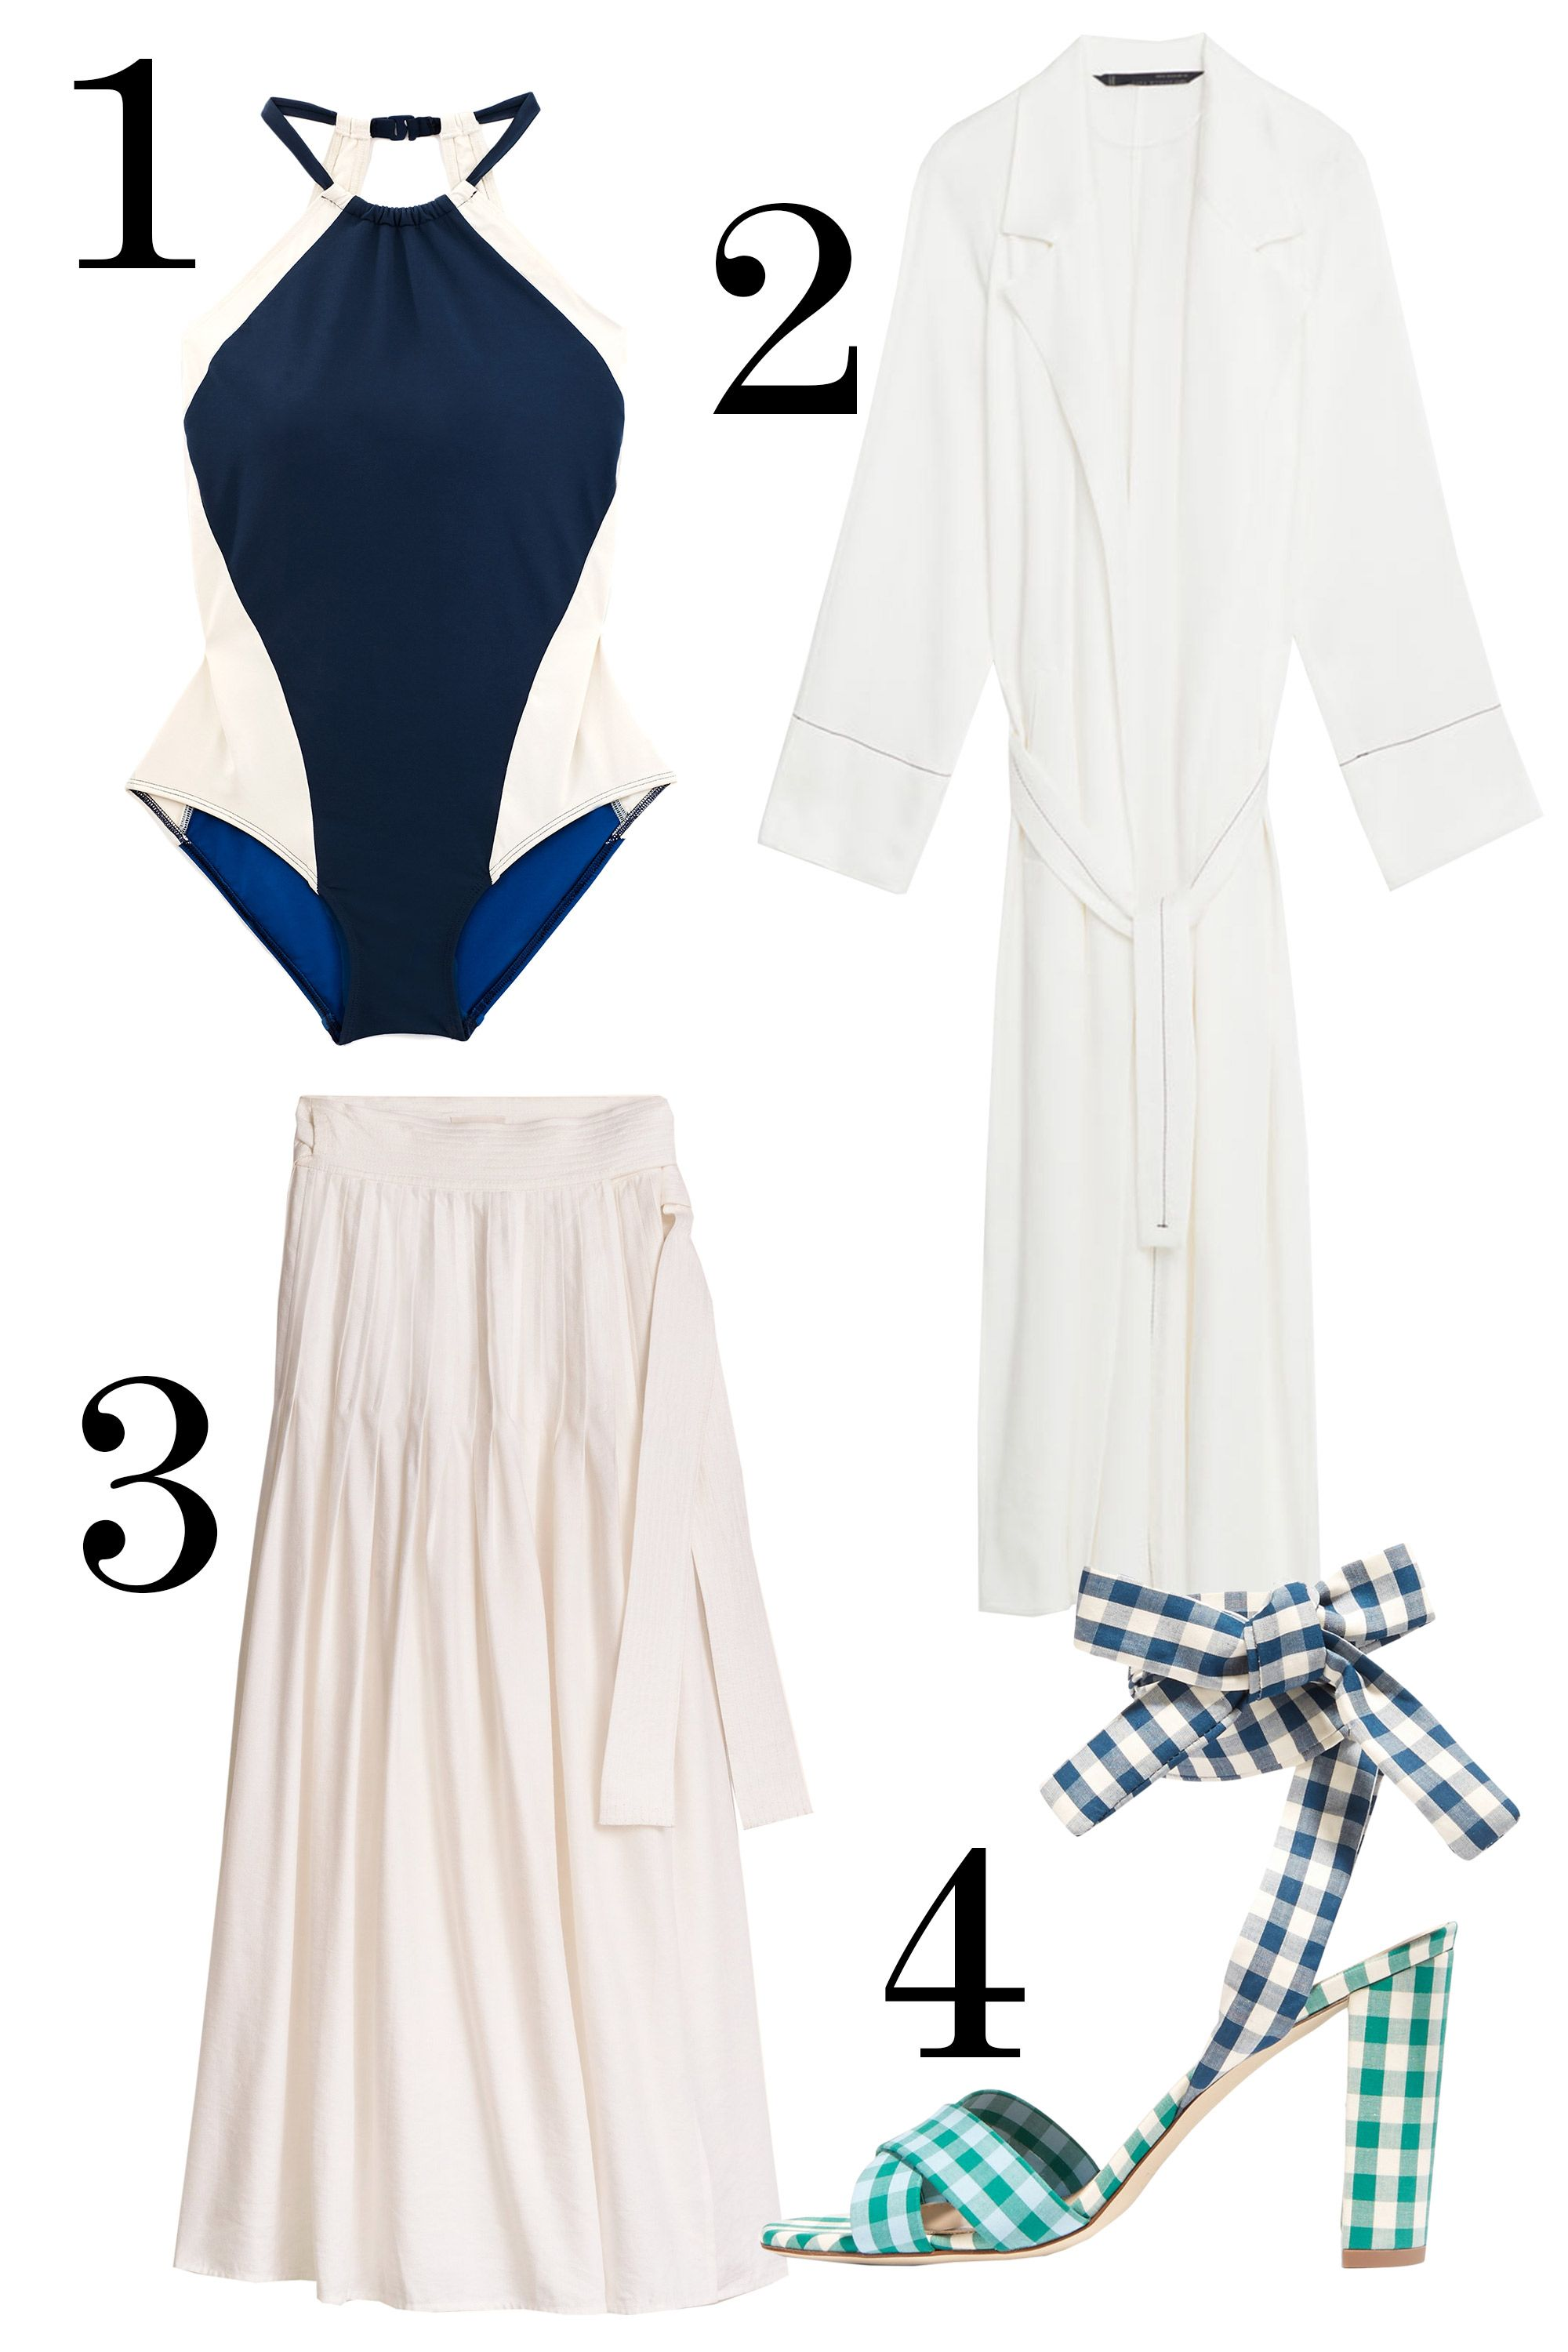 """<p>Not even mad that our bodysuit obsession has no surpassed """"full-blown."""" Treat a one-piece like a Didion-esque leotard, top with a skirt and robe, and tie on some heels that could be espadrilles on the weekend. </p><p><br> </p><p>1. Flagpole Swim color-block swimsuit, $385, <a href=""""http://flagpoleswim.com/collections/one-piece/products/nola"""">flagpoleswim.com</a>. </p><p>2. Zara trench coat, $199, <a href=""""http://www.zara.com/us/en/woman/outerwear/trench-coats/studio-trench-coat-c710517p3669058.html"""" target=""""_blank"""">zara.com</a>. </p><p>3. Aritzia wrap skirt, $150, <a href=""""http://aritzia.com/en/product/essonne-skirt/56196.html?dwvar_56196_color=6824"""" target=""""_blank"""">aritzia.com</a>. </p><p>4. J.Crew gingham sandals, $240, <a href=""""http://rstyle.me/n/bsmdqvbqb8f"""" target=""""_blank"""">net-a-porter.com</a>.</p>"""